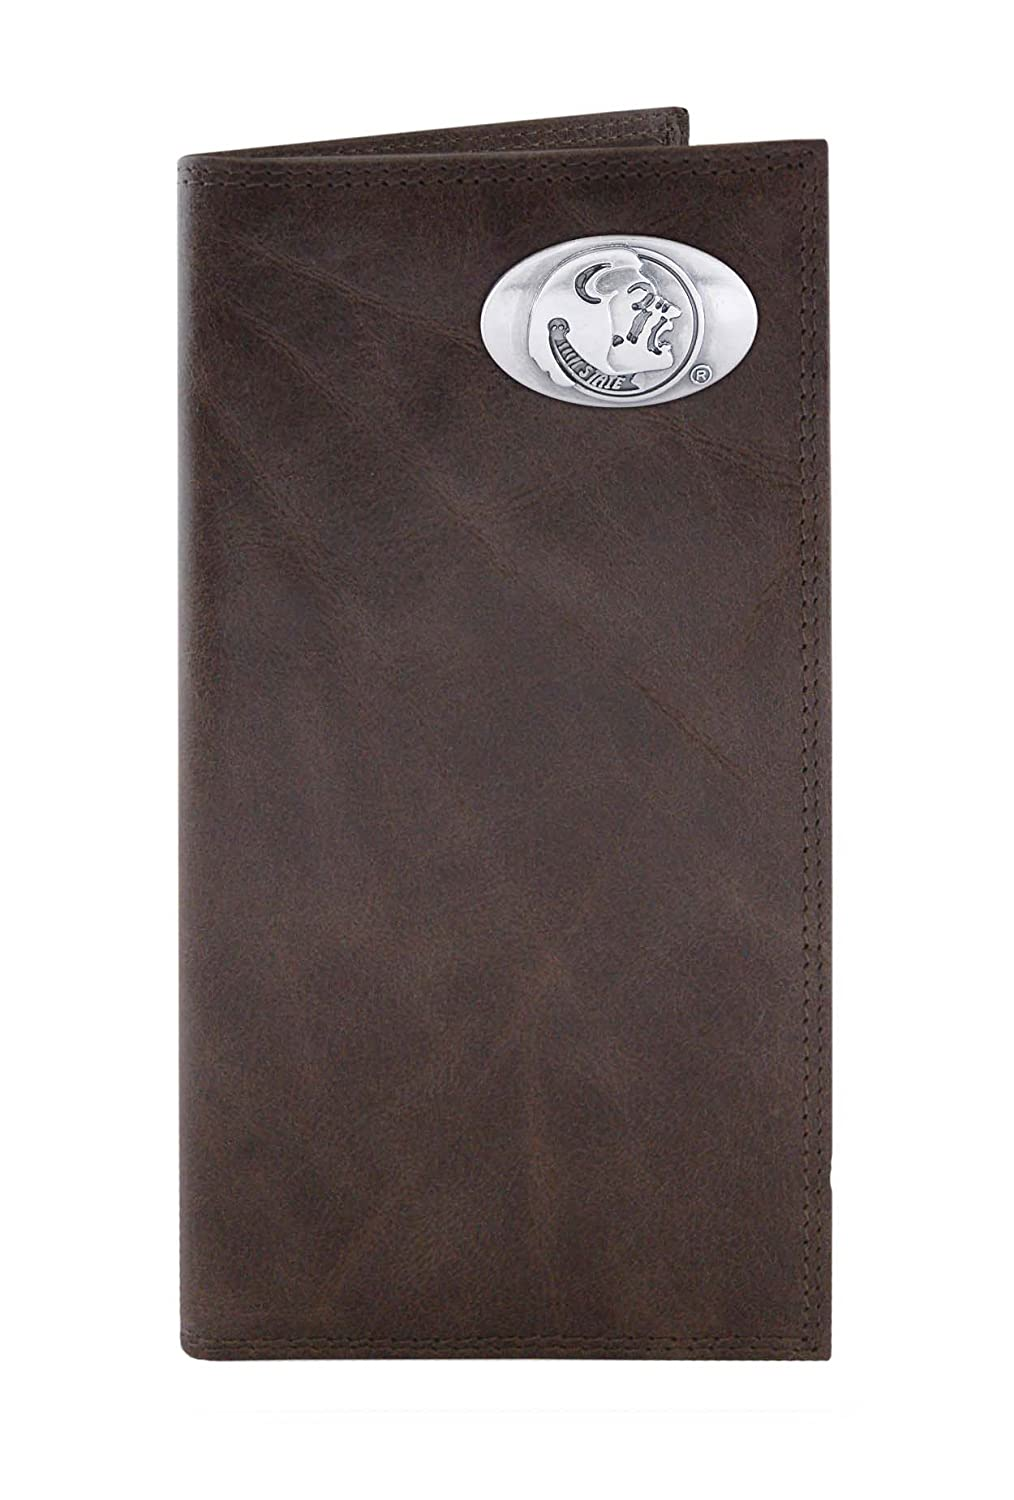 NCAA Florida State Seminoles Brown Wrinkle Leather Roper Concho Wallet One Size